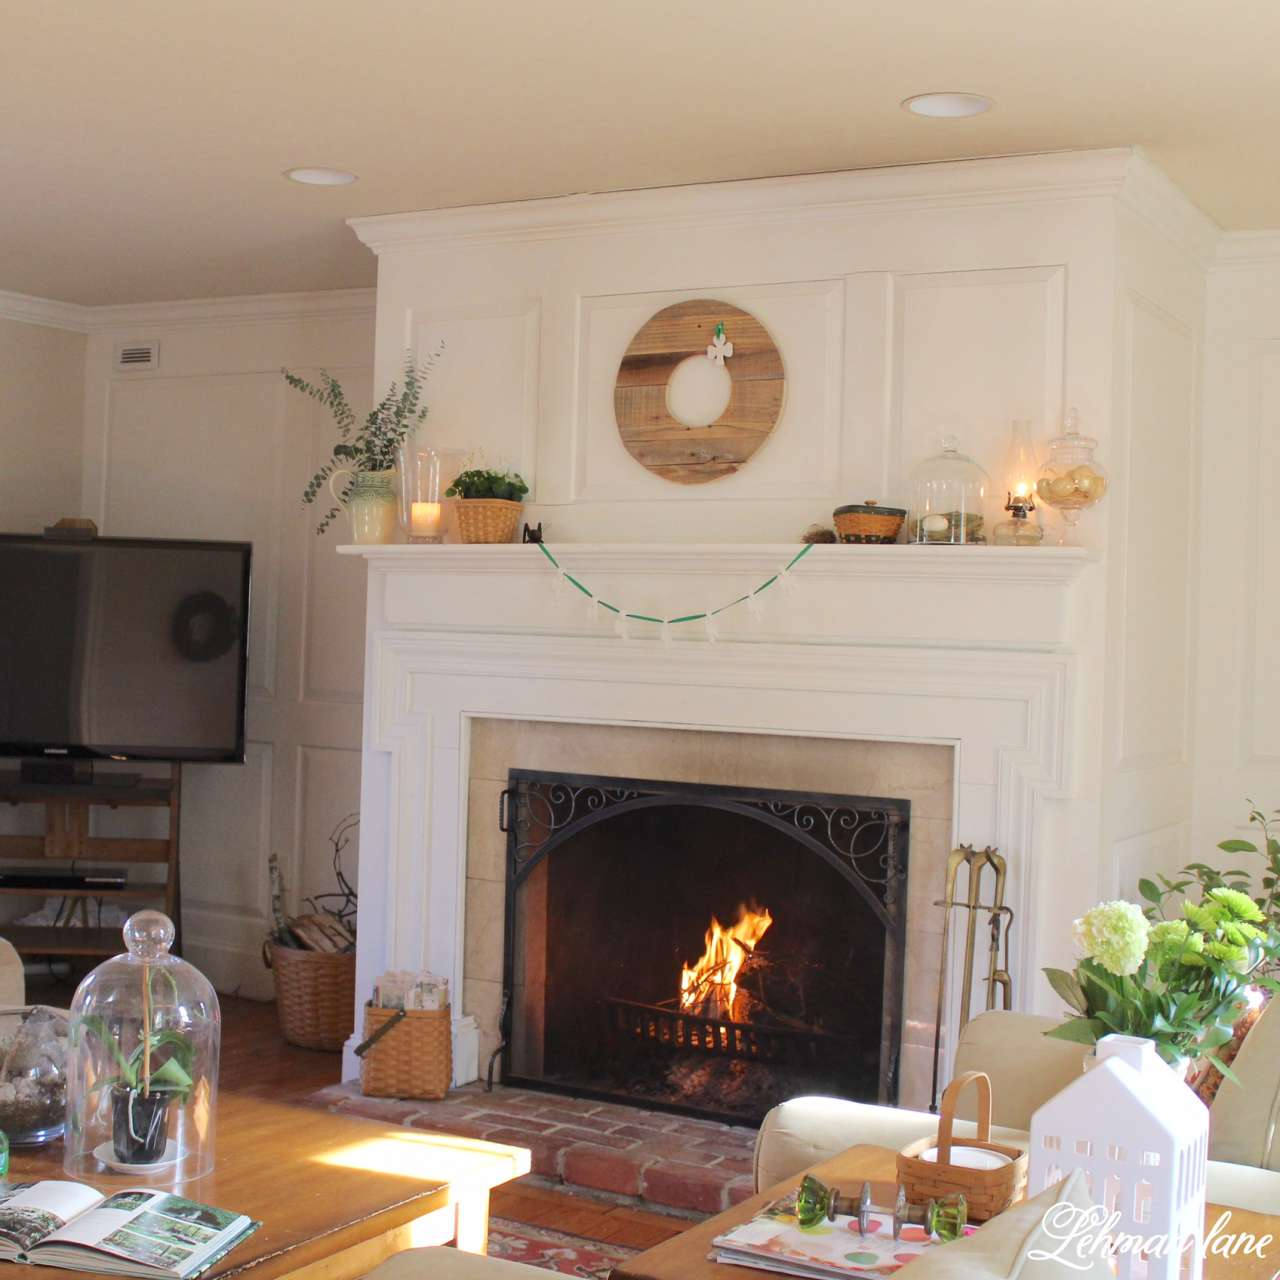 I am sharing my green St. Patrick's day tour with many of my blogging friends! Come check out how I decorated my house accented by shamrocks and green.